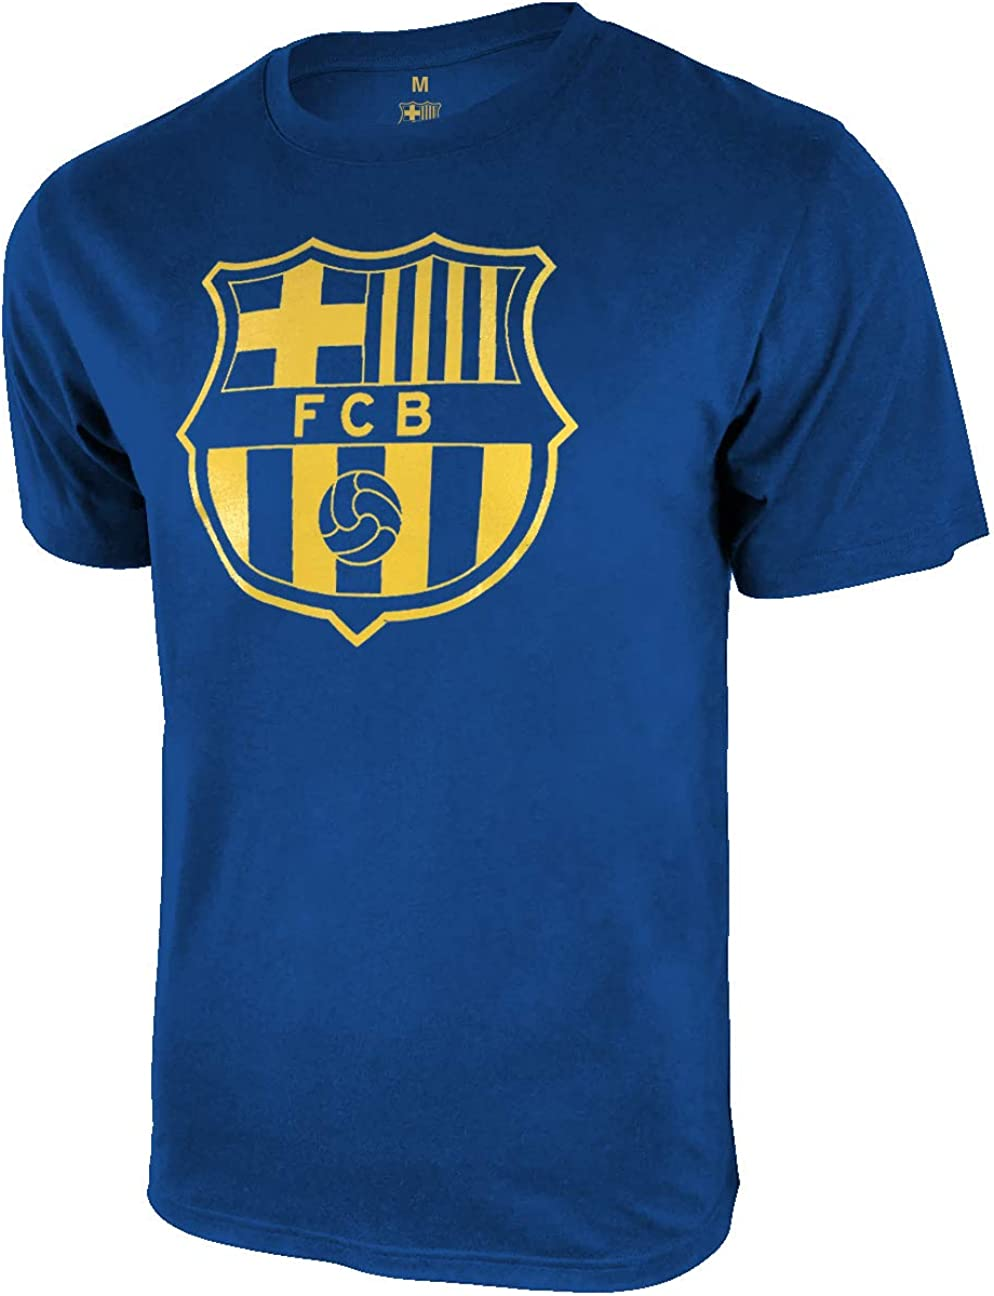 Icon Sports Men FC Barcelona Officially Licensed Soccer T-Shirt Cotton Tee 02